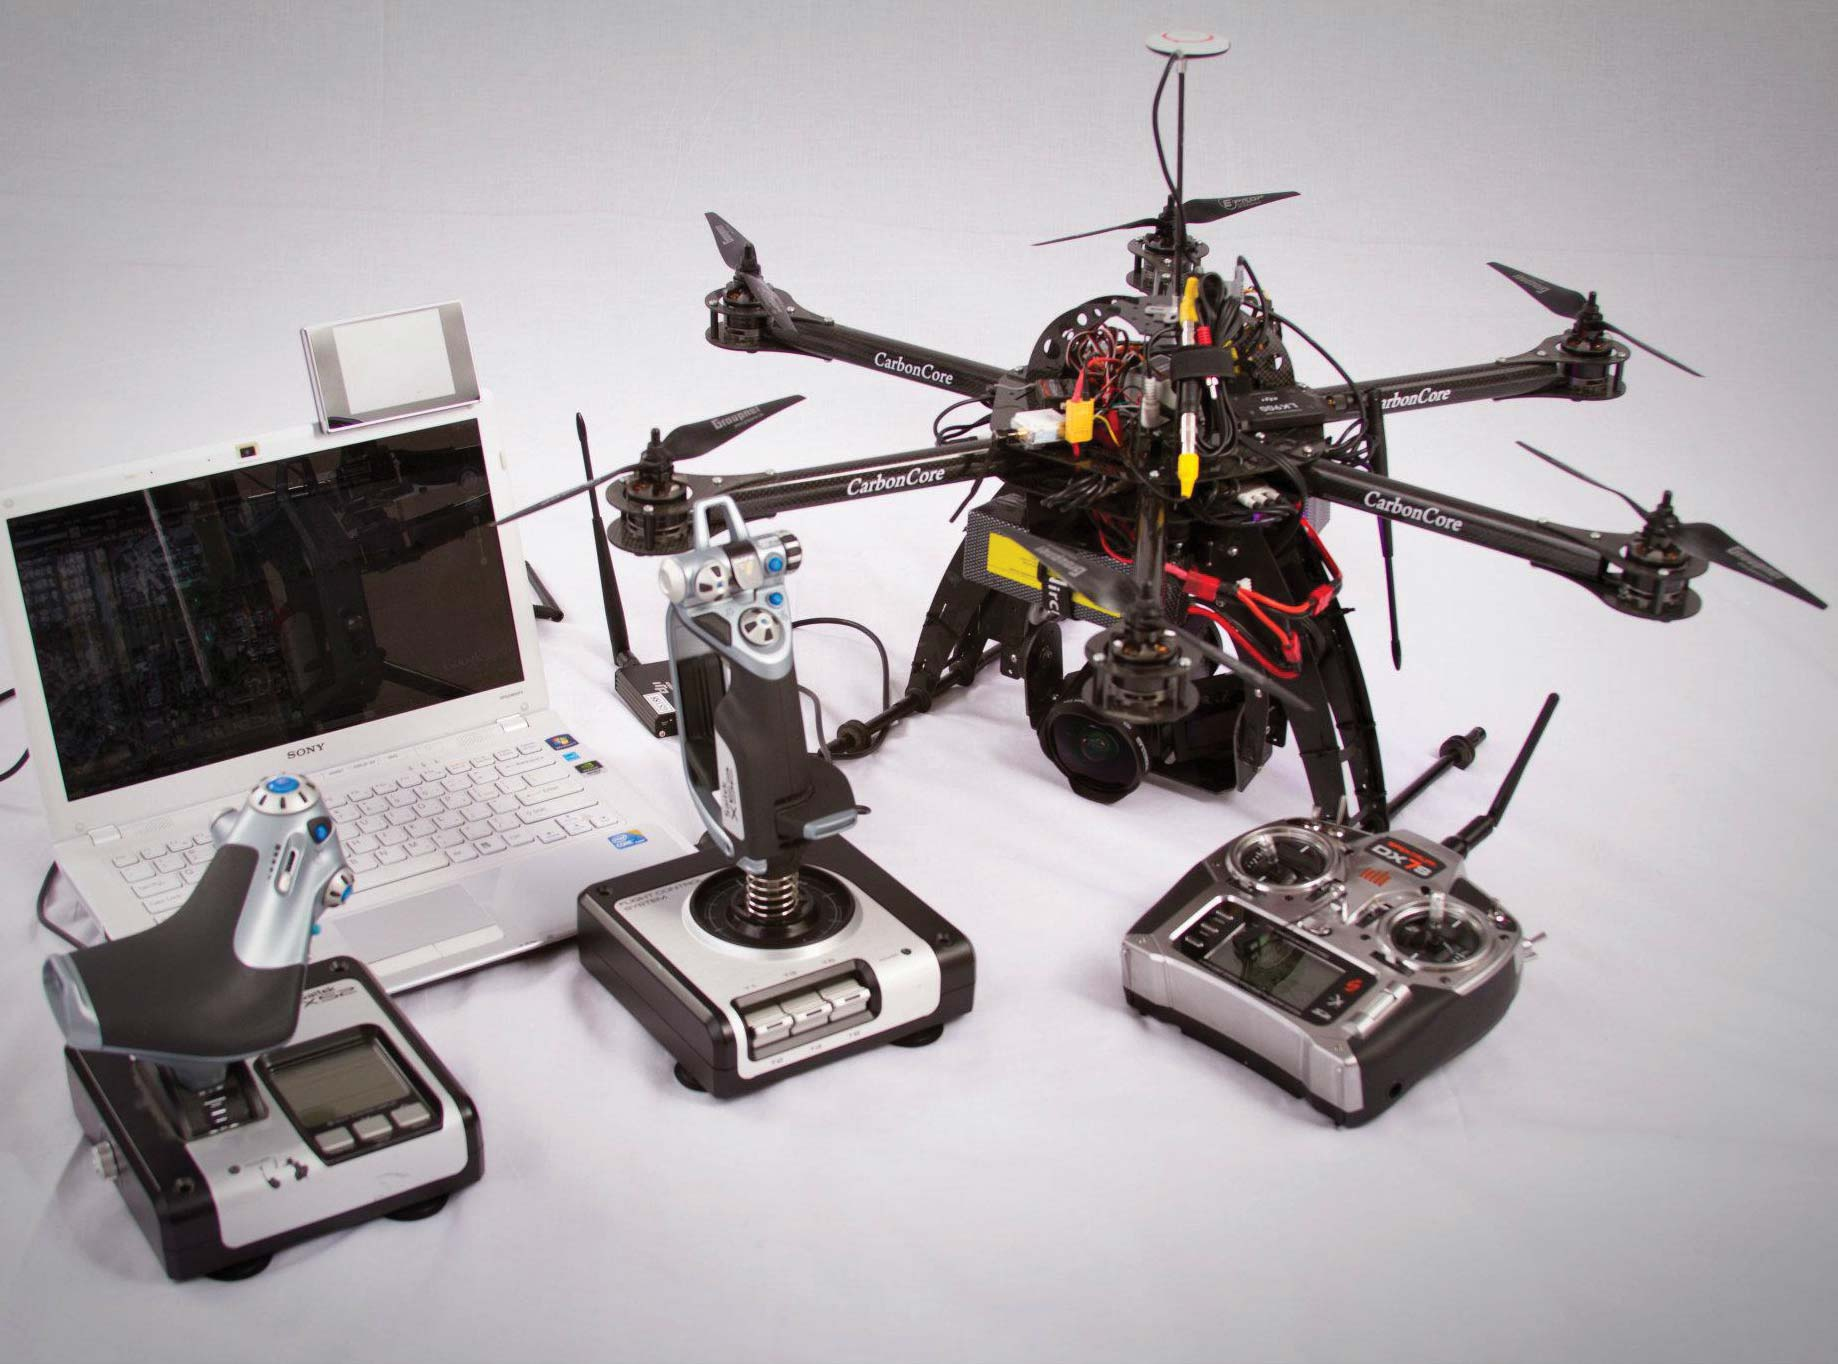 Collage of a CarbonCore drone helicopter with camera attached and the remote control units with a laptop as viewer.